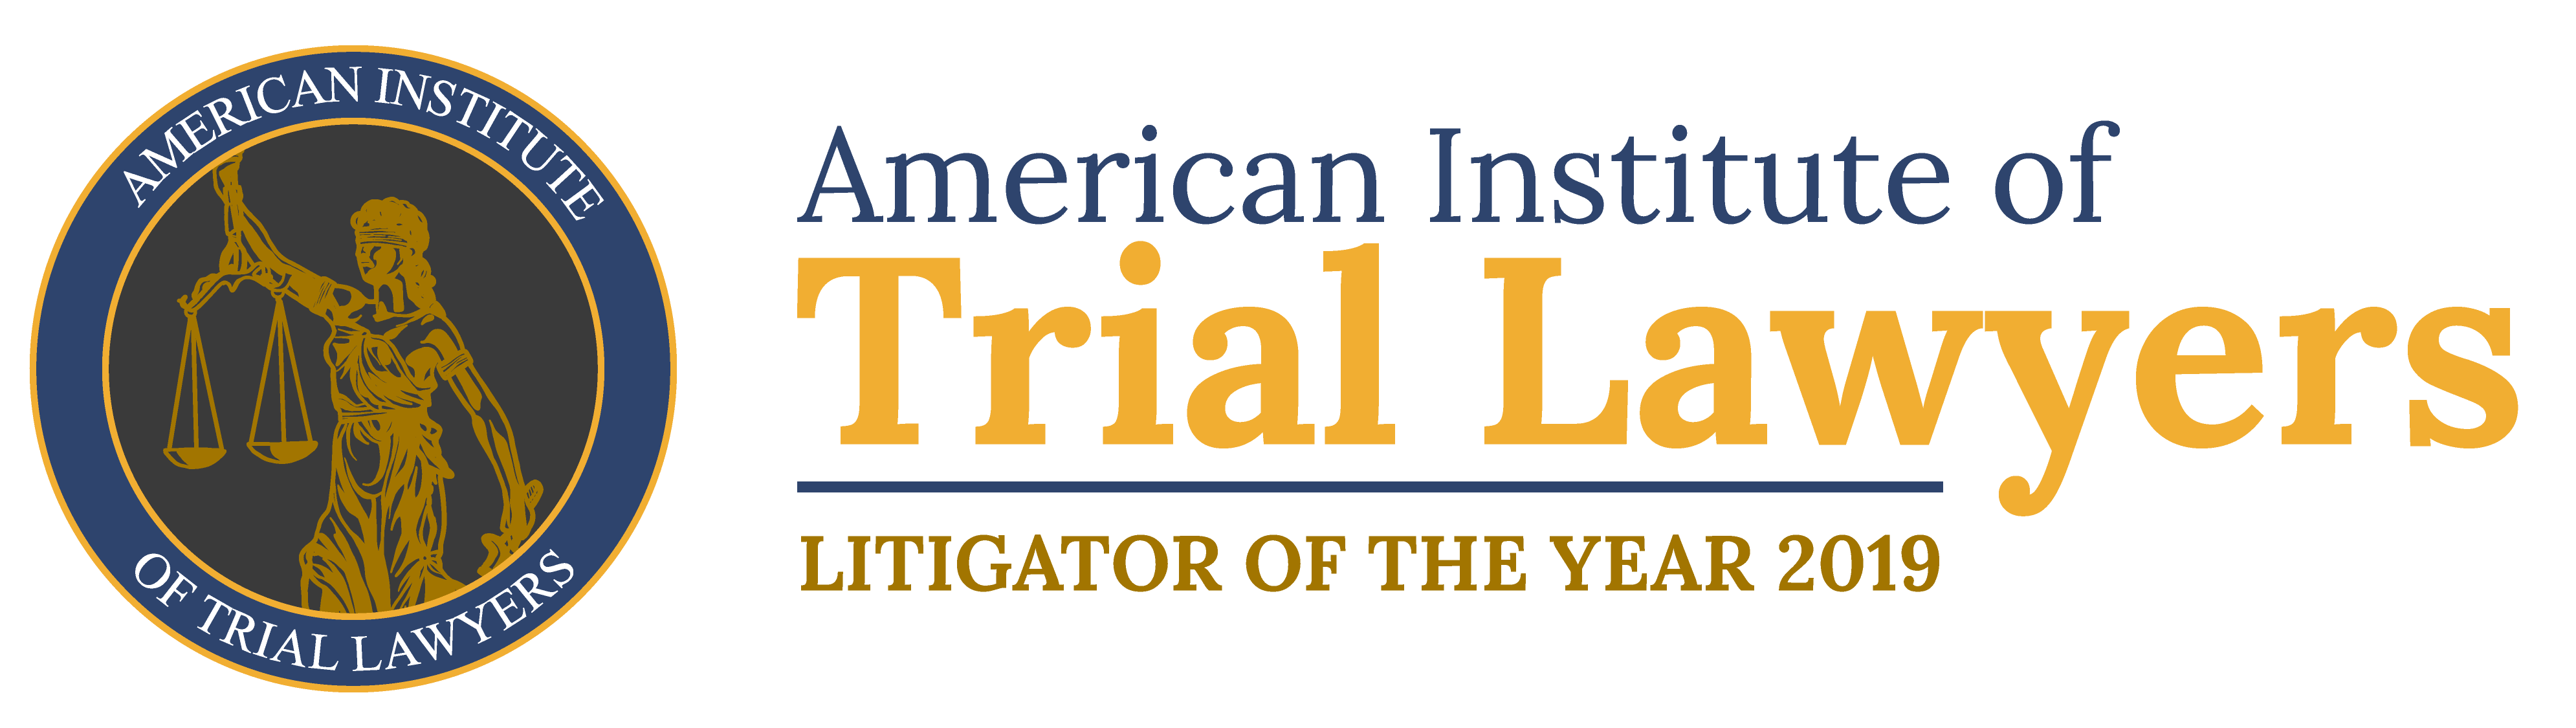 American Institute of Trial Lawyers | Litigator of the Year